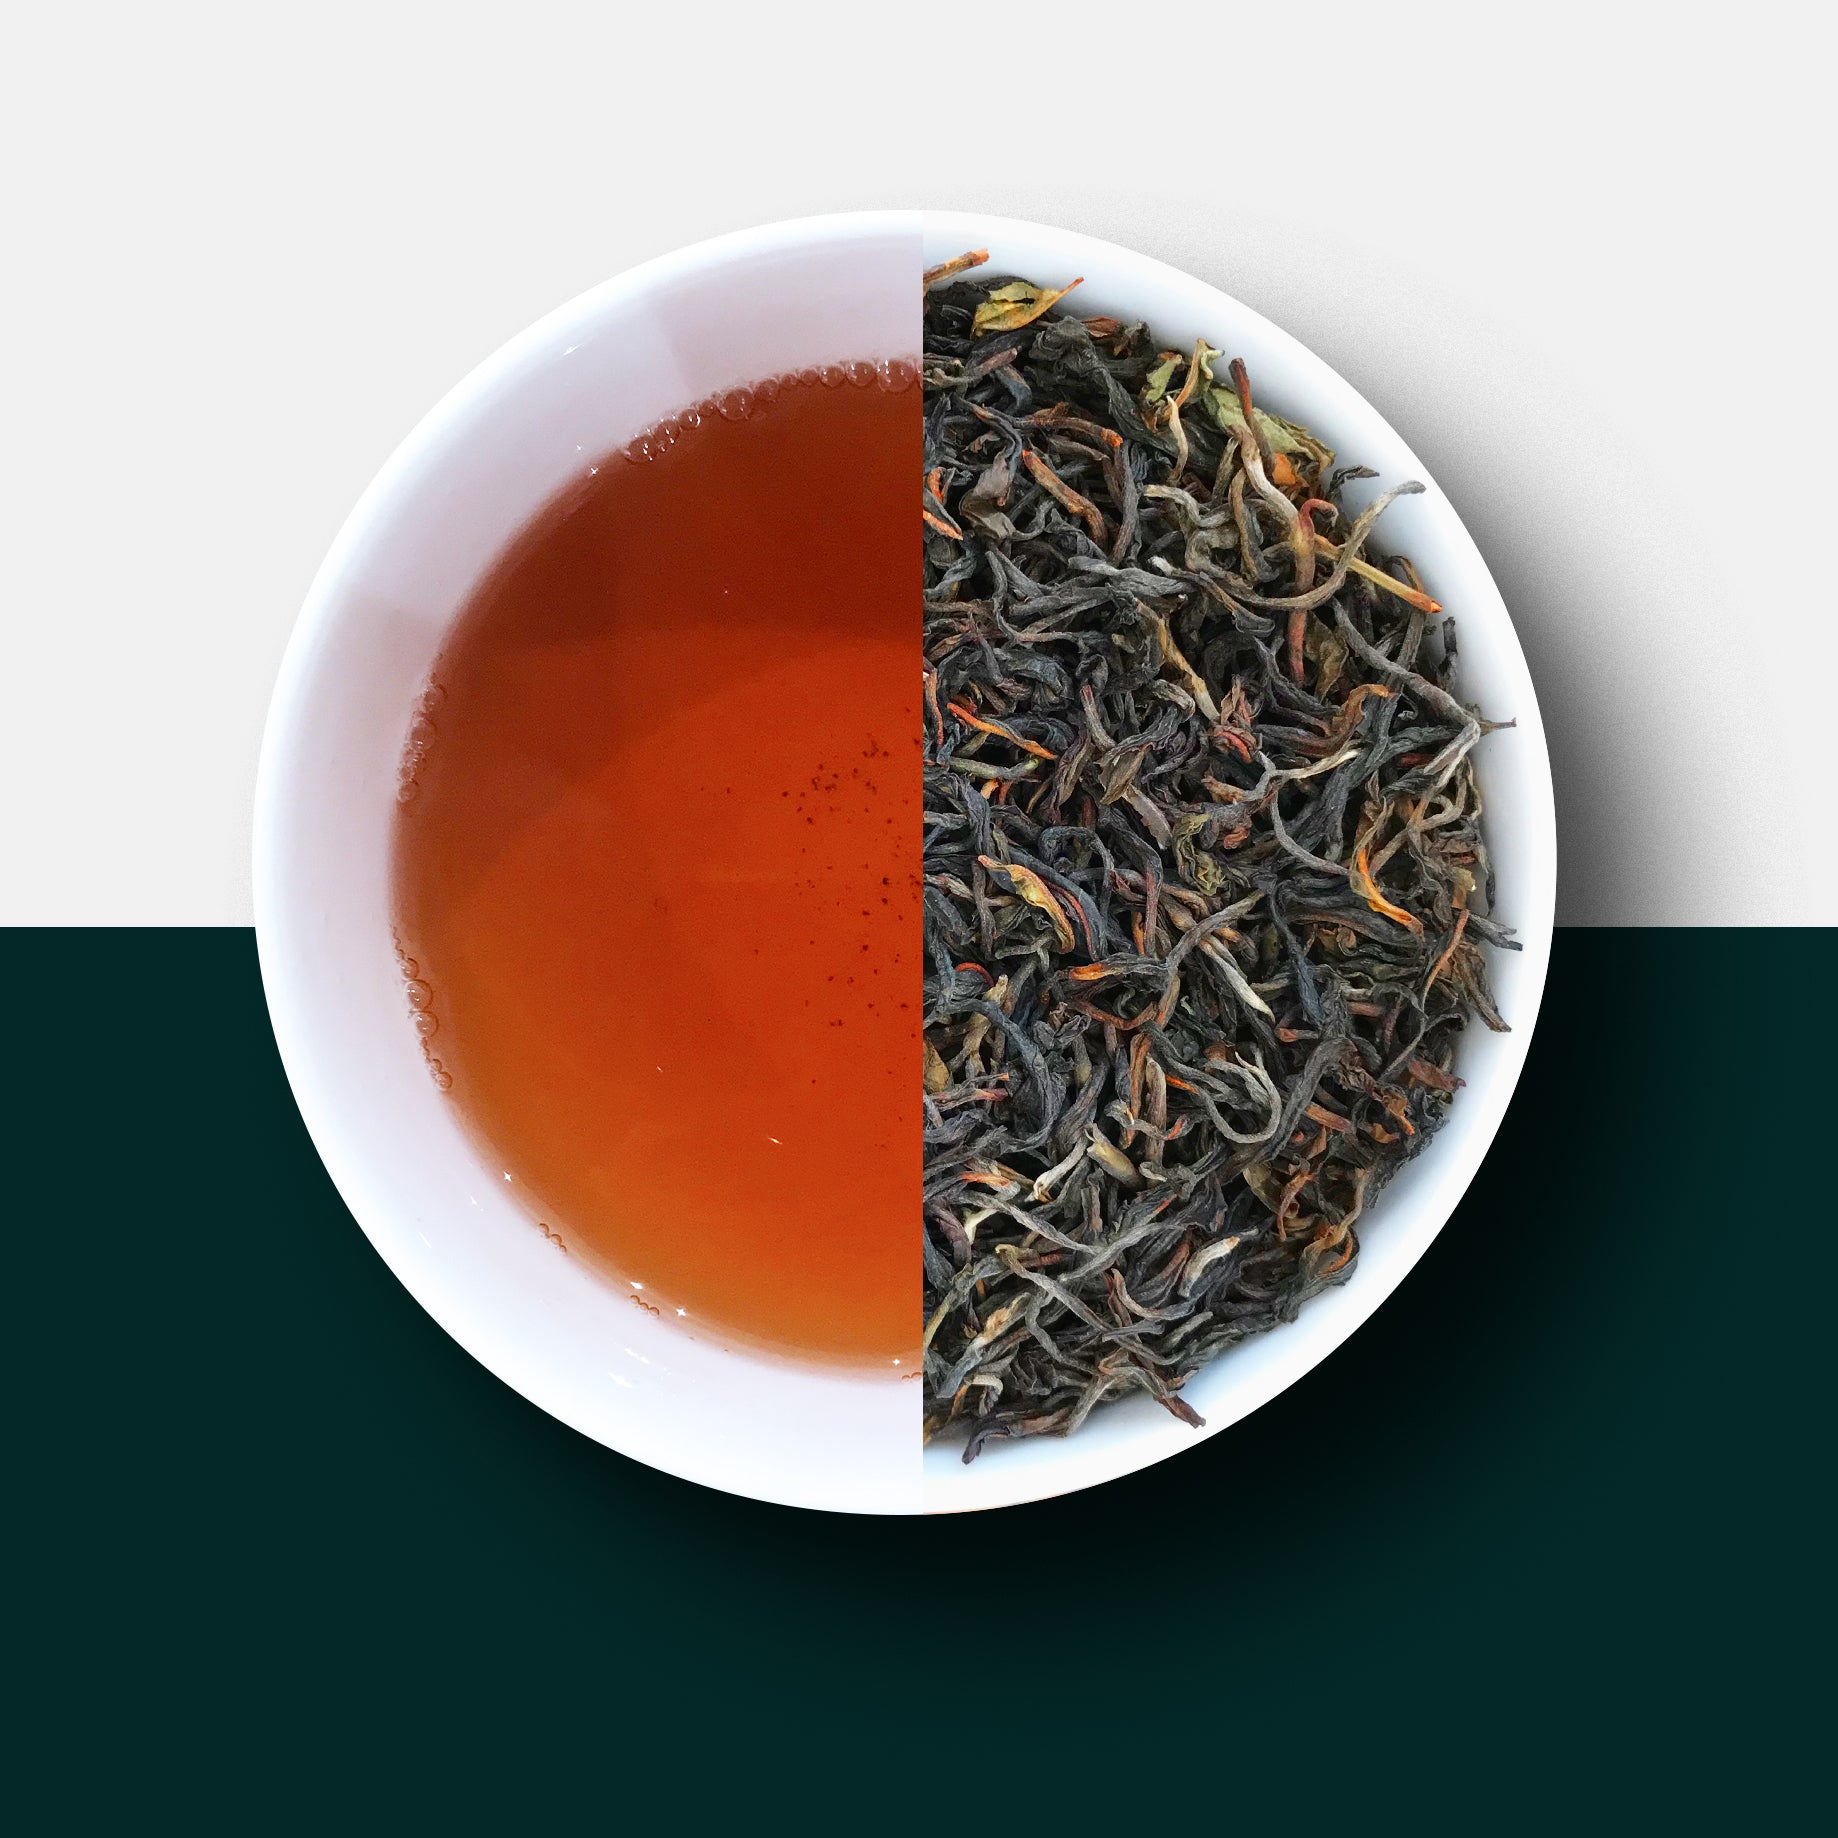 Malawian First Flush Rare Tea Loose Leaves and Liquid